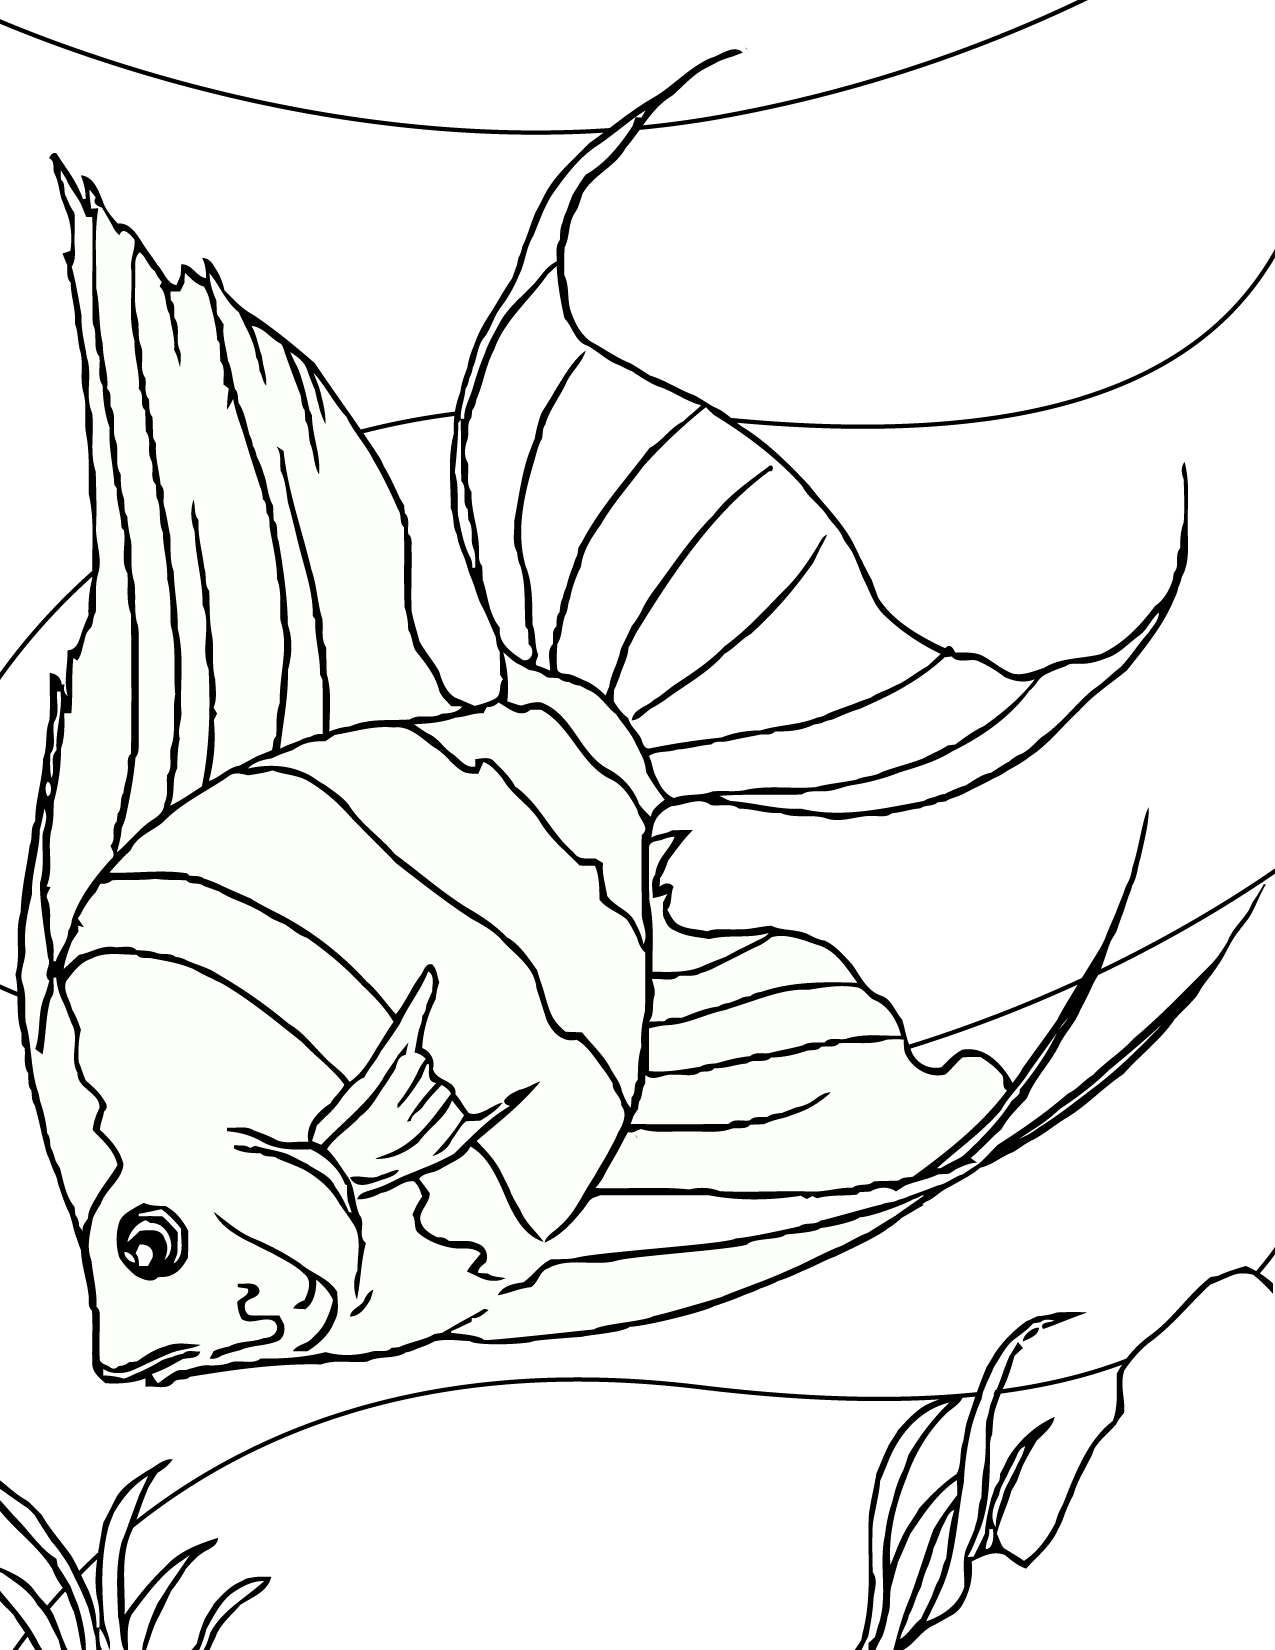 coloring pages and tropical fish - photo#33